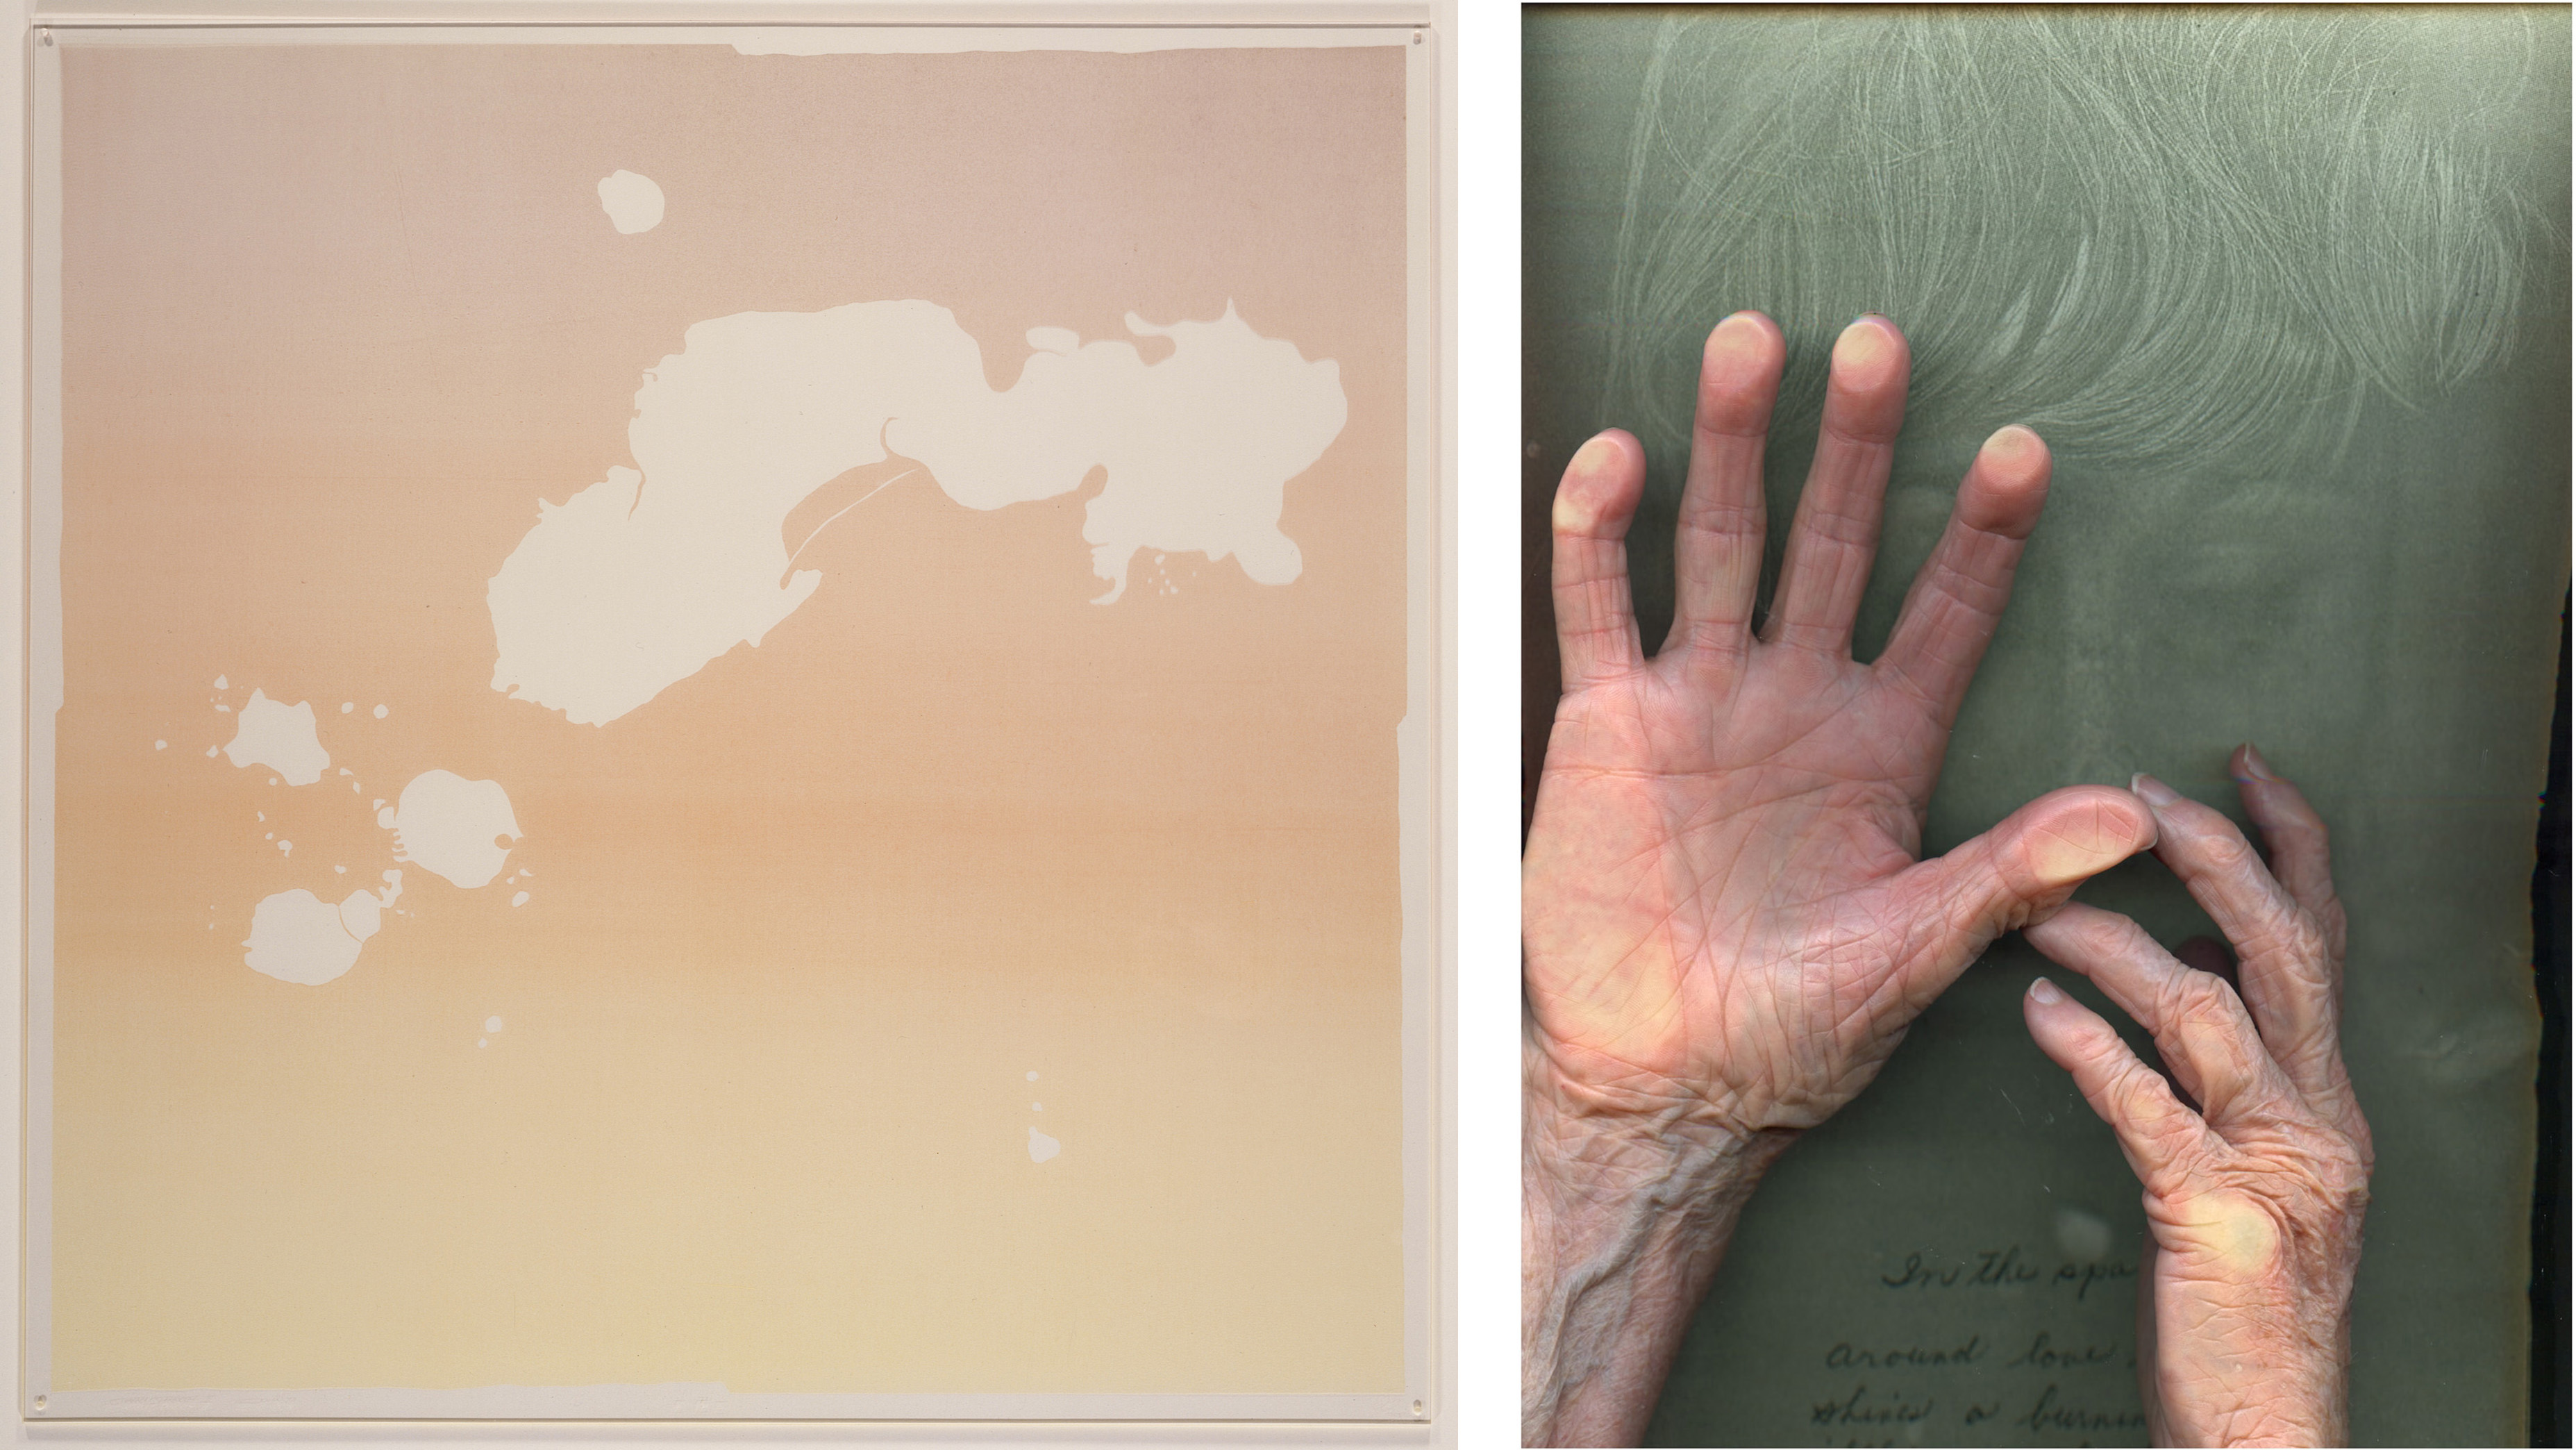 Left: Gregory Card, + 卍 -, 1971, Los Angeles County Museum of Art, Cirrus Editions Archive, purchased with funds provided by the Director's Roundtable, and gift of Cirrus Editions, © 2020 Gregory Card/Artists Rights Society (ARS), New York, photo © Museum Associates/LACMA; Right: Barbara T. Smith, Signifer 1, 2016, © Barbara T. Smith, photo courtesy Cirrus Editions